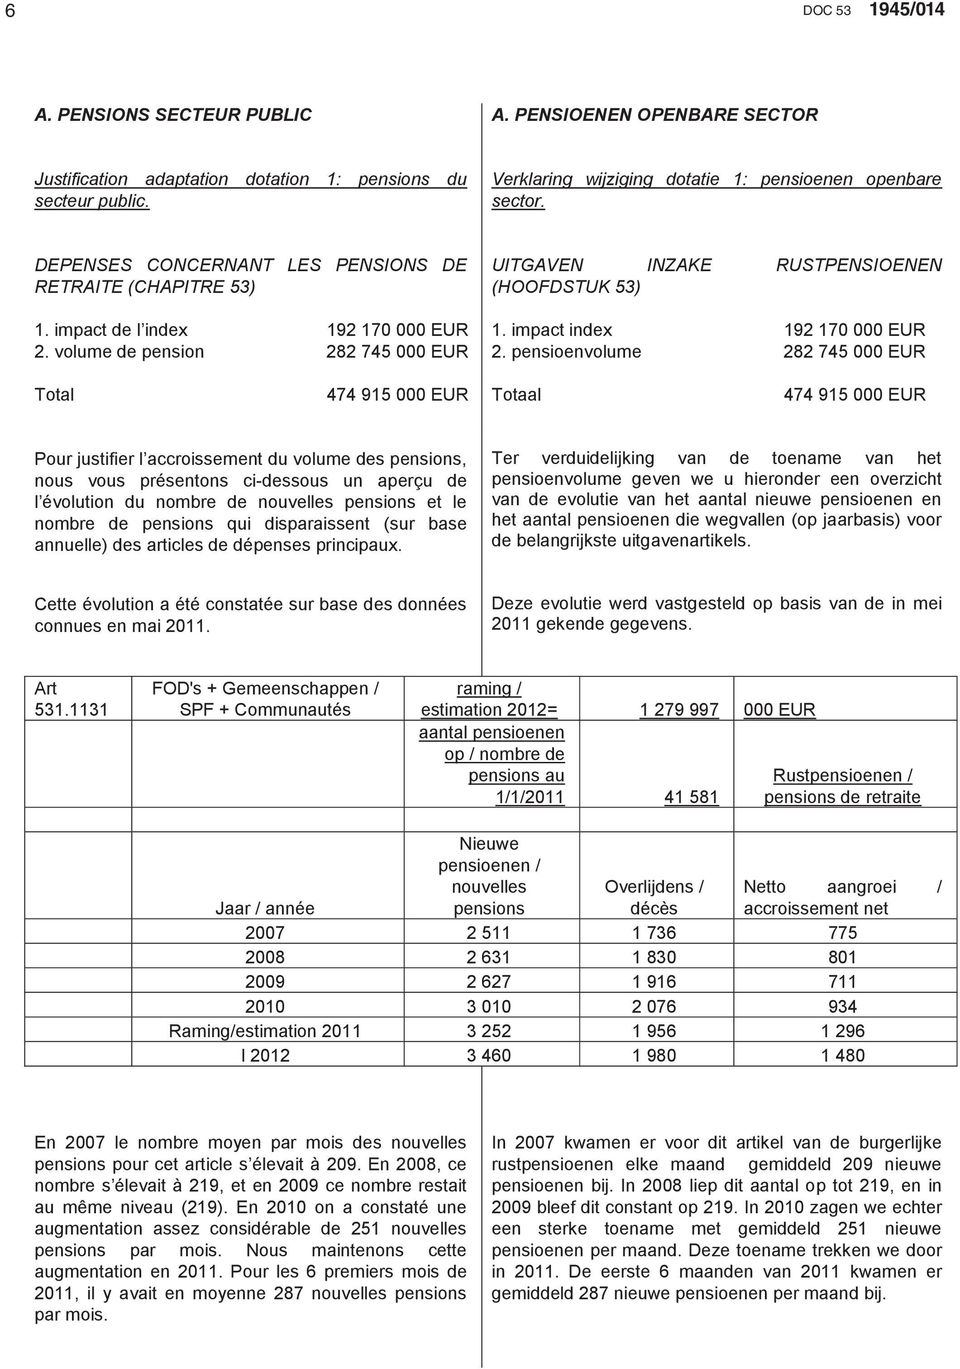 volume de pension 282 745 000 EUR 2.